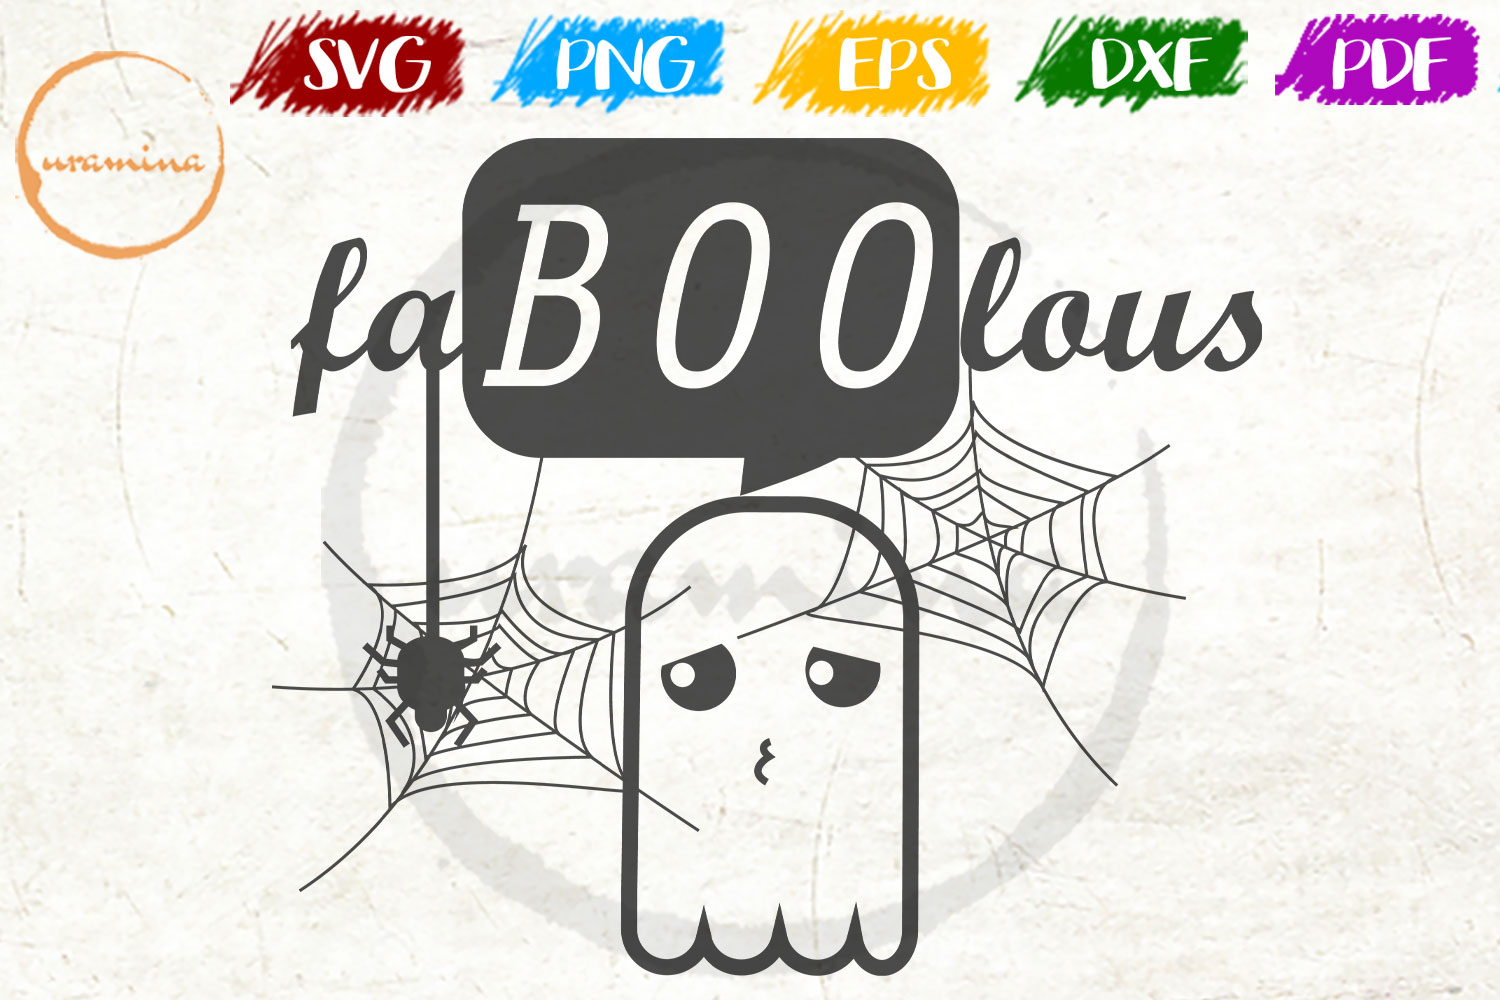 Download Free Faboolous Graphic By Uramina Creative Fabrica for Cricut Explore, Silhouette and other cutting machines.